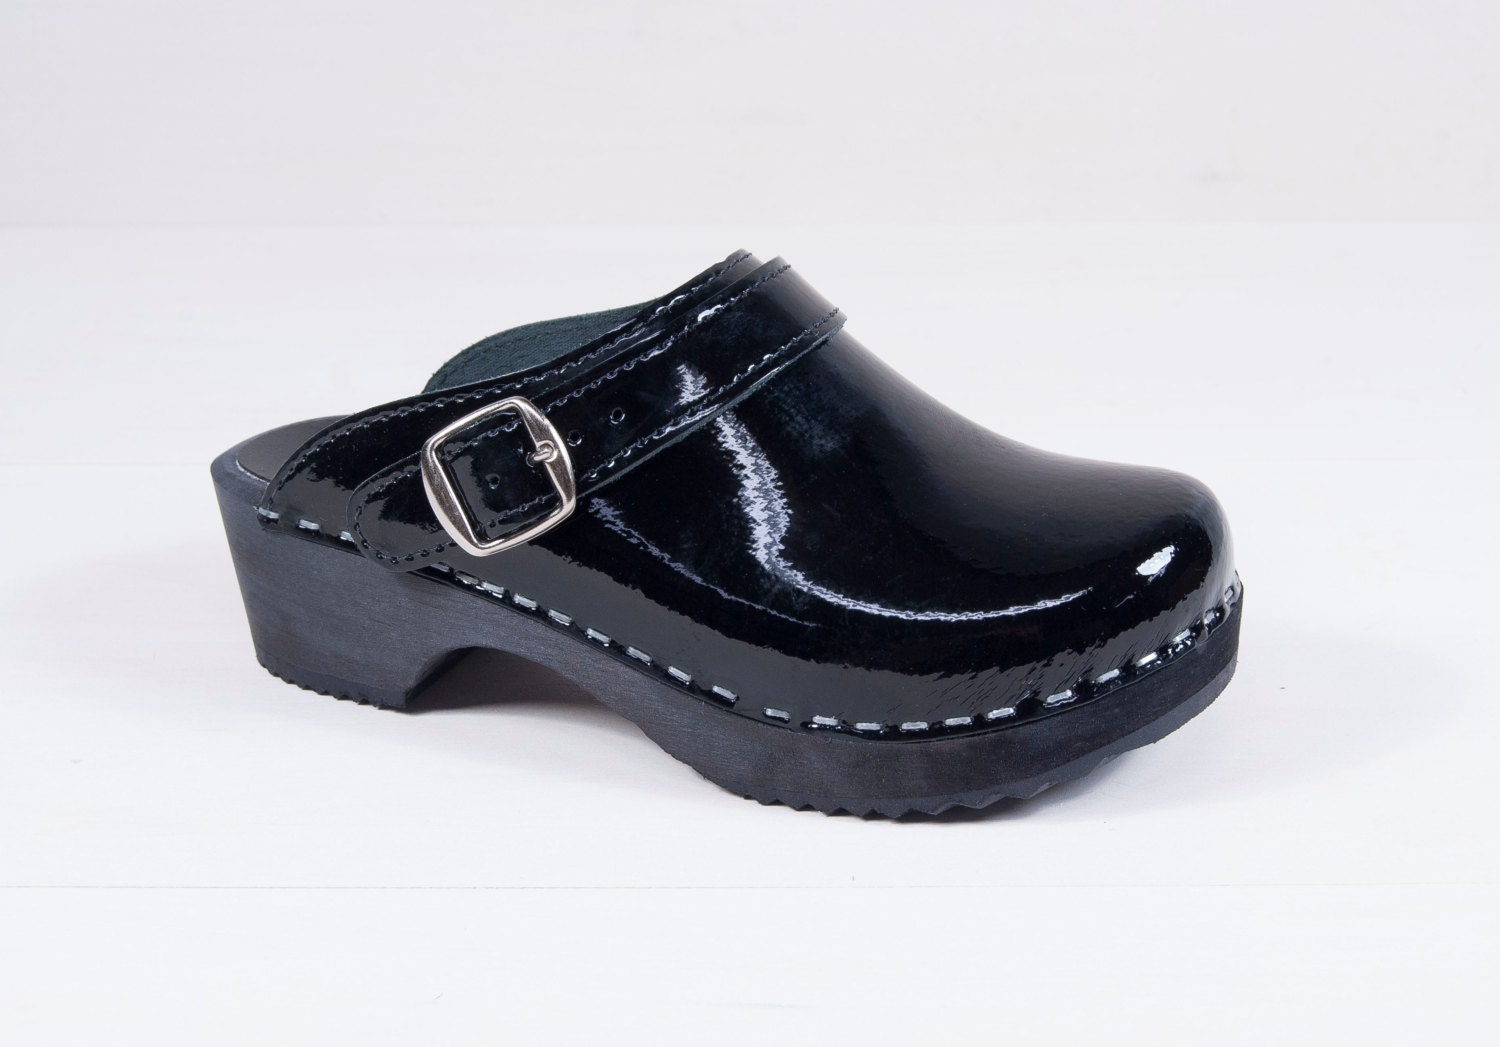 Black sandals baby girl - Like This Item